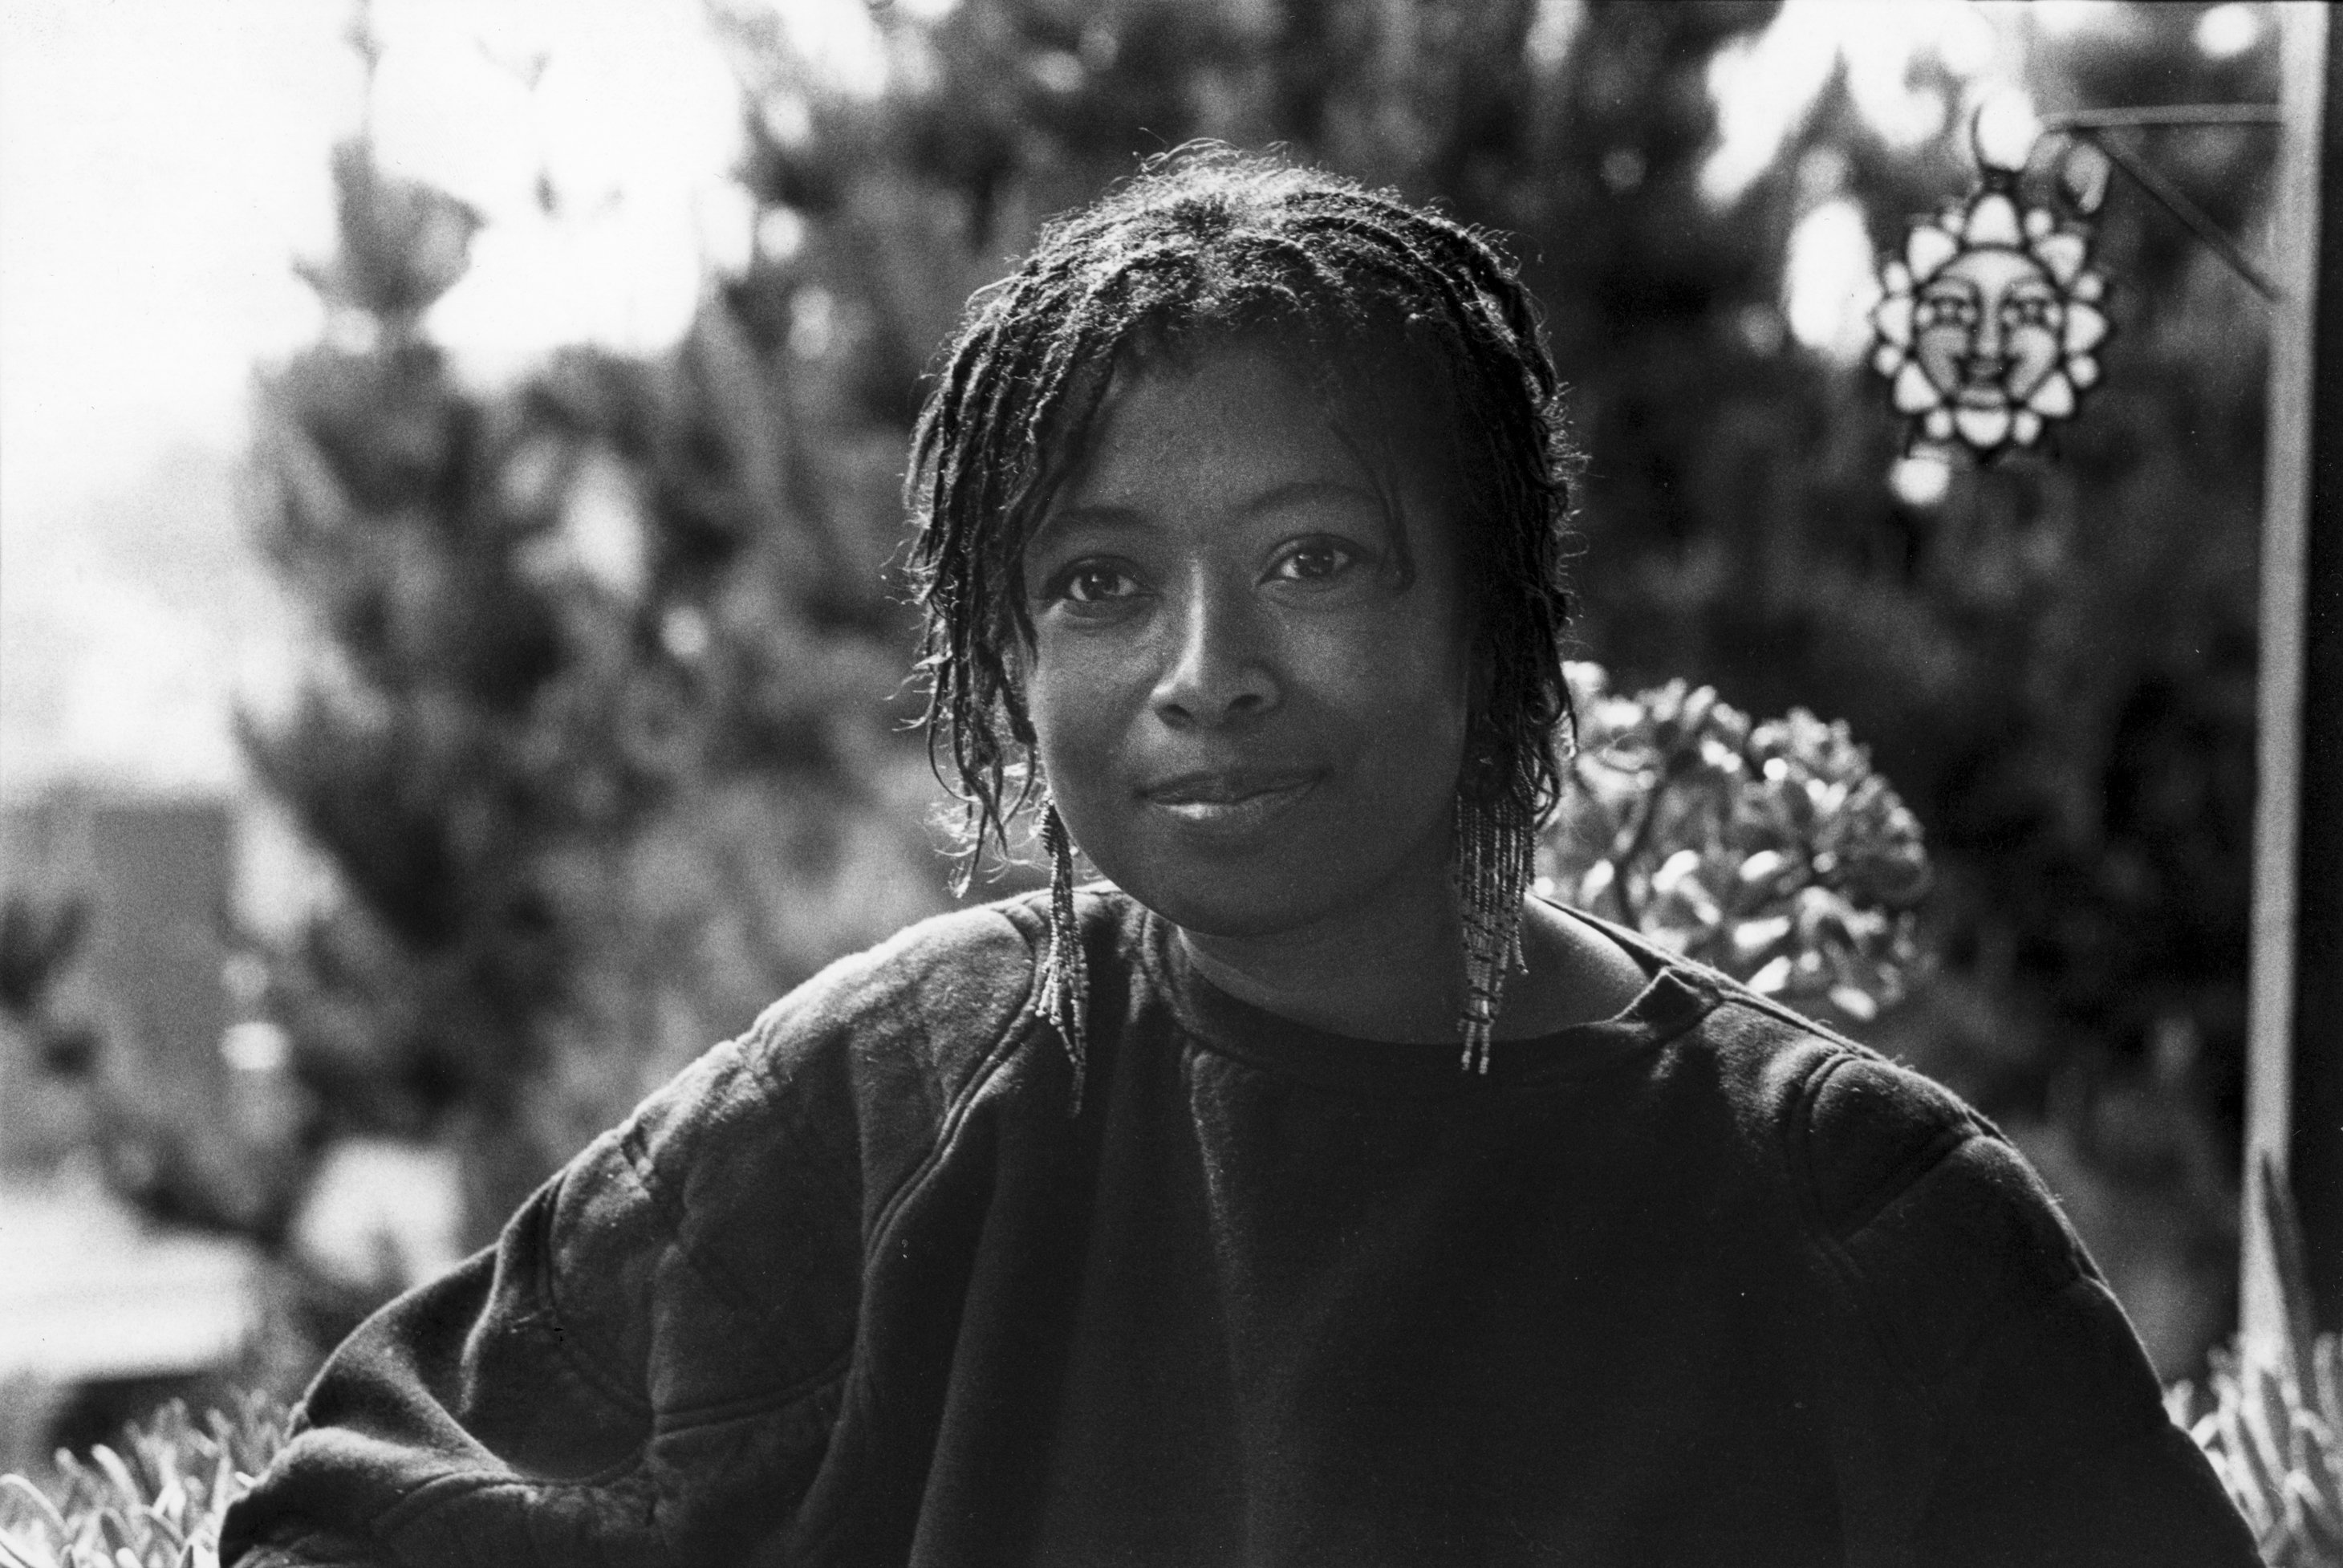 Alice Walker , Best known for her novel 'The Color Purple', poses for portrait at home in San Francisco in January, 1985. | Photo by Mikki Ansin/Getty Images